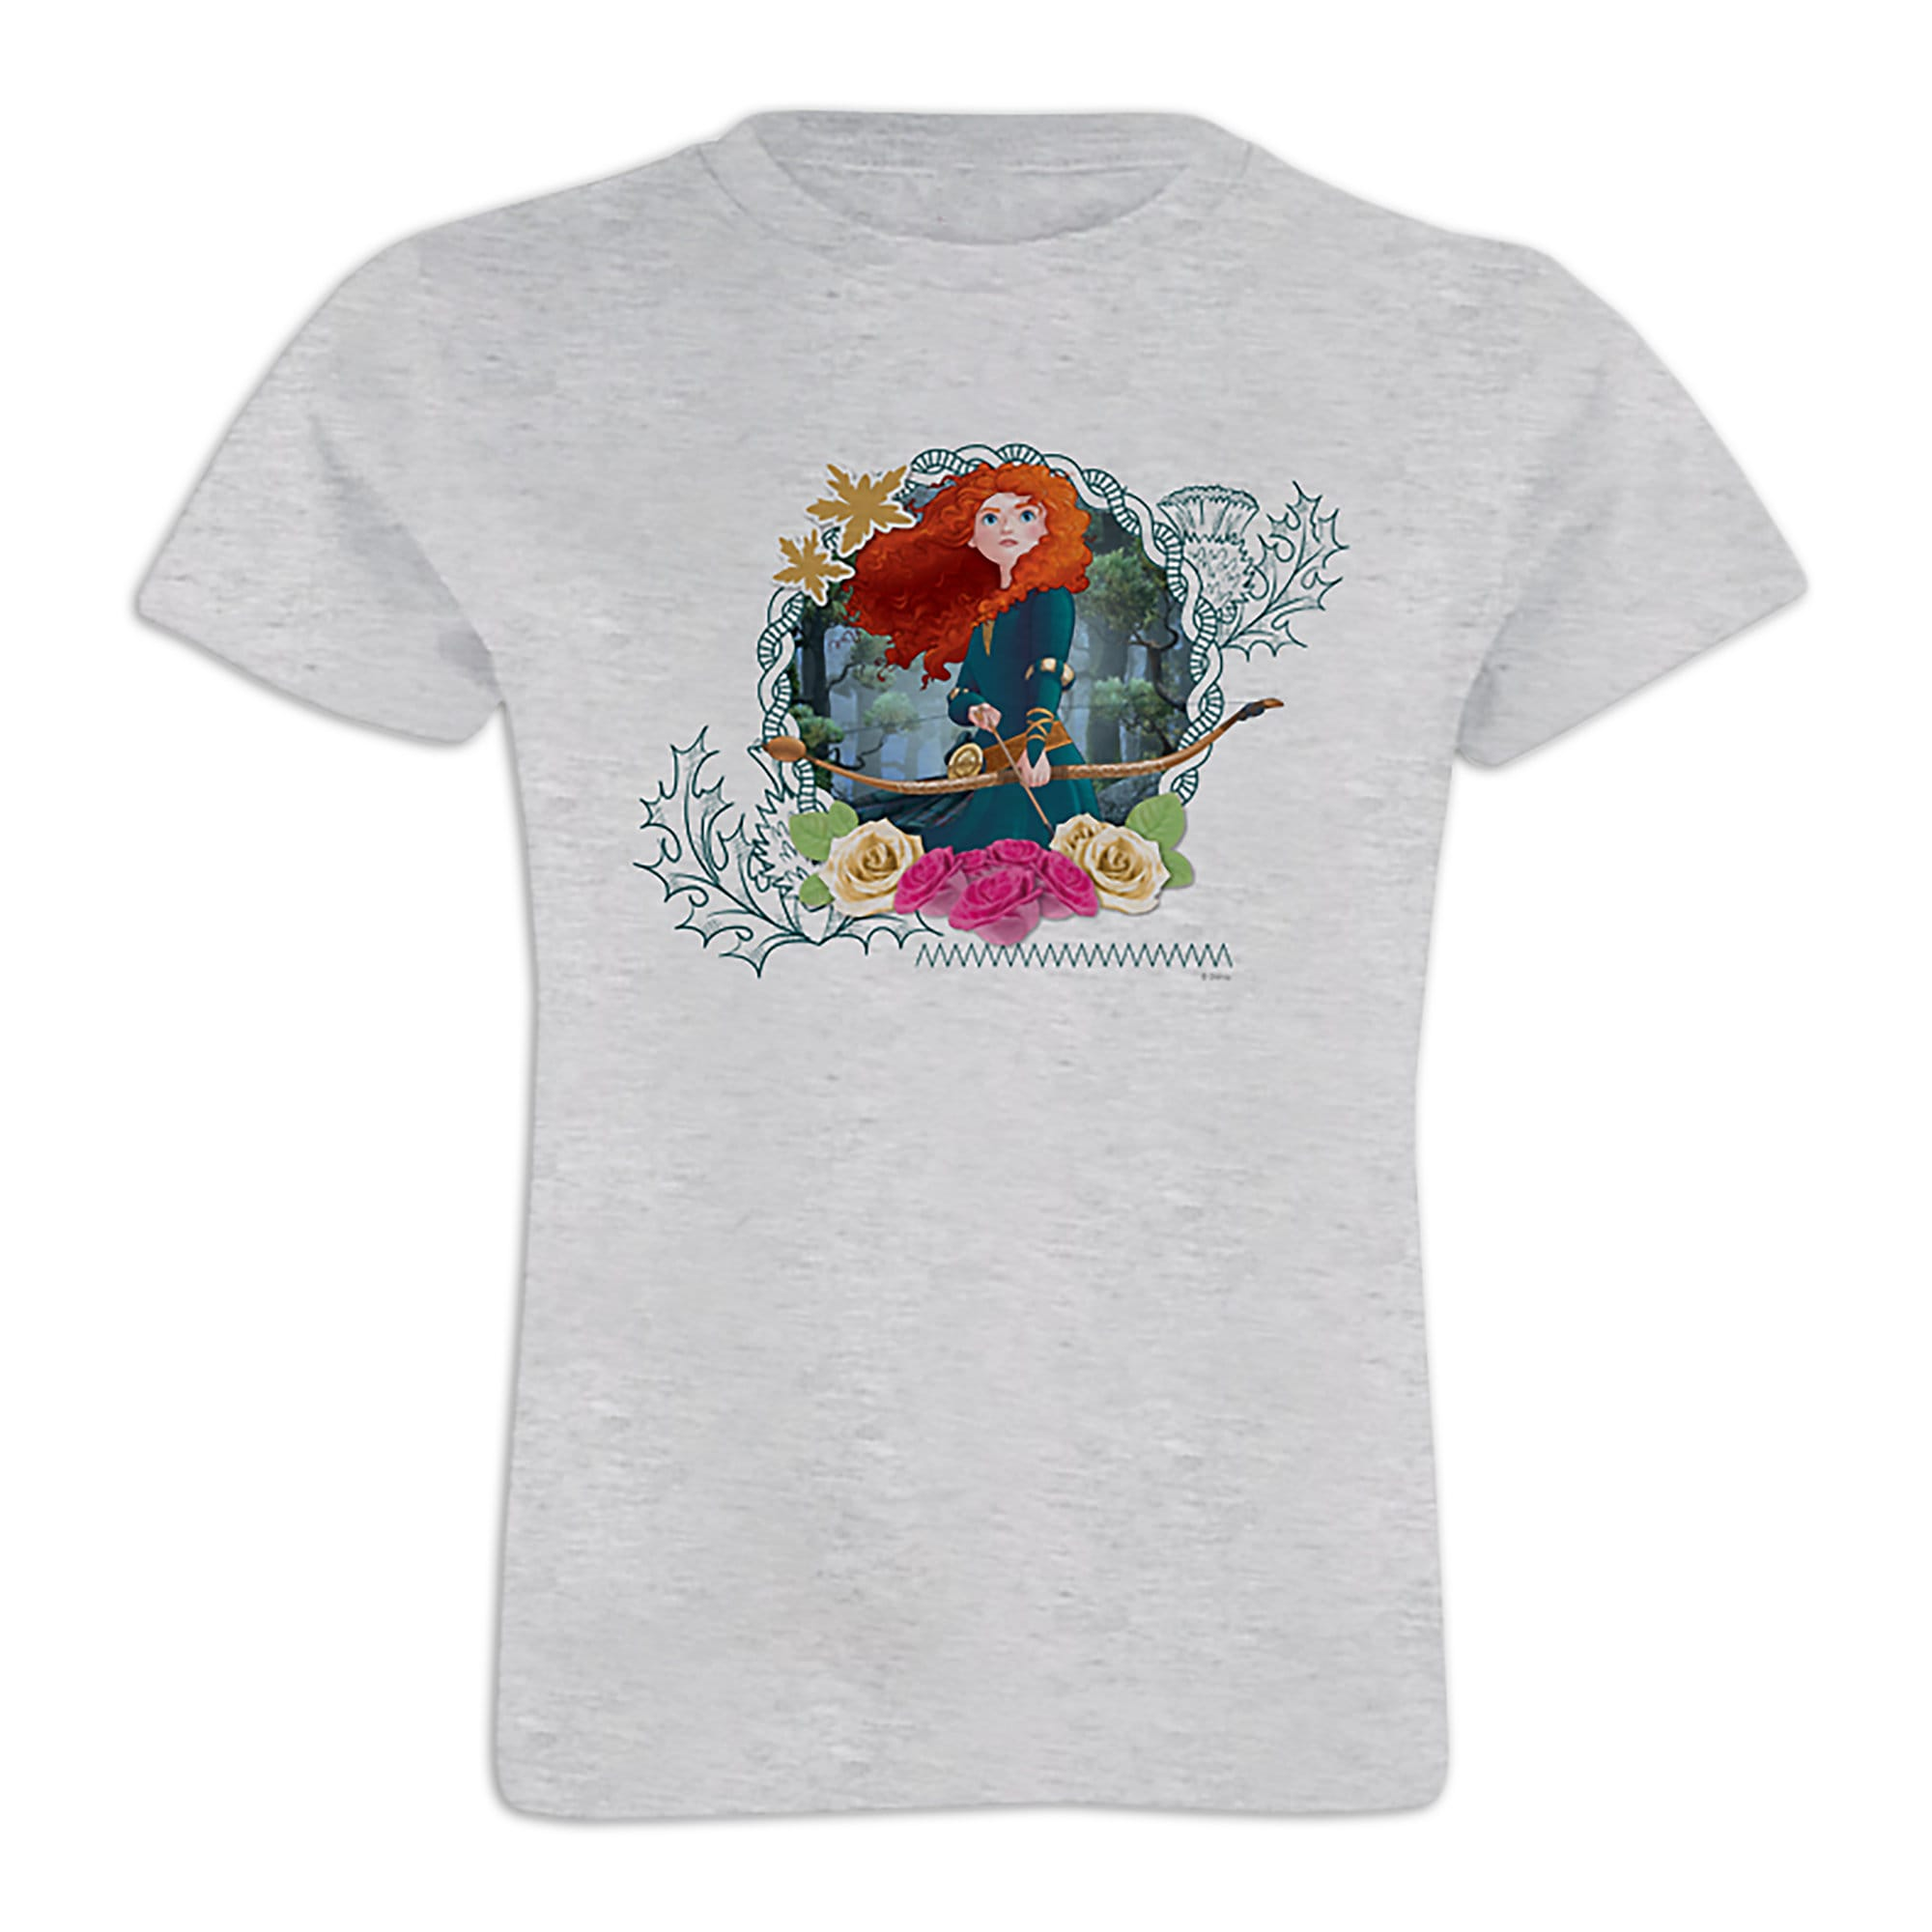 Merida Tee for Girls - Customizable